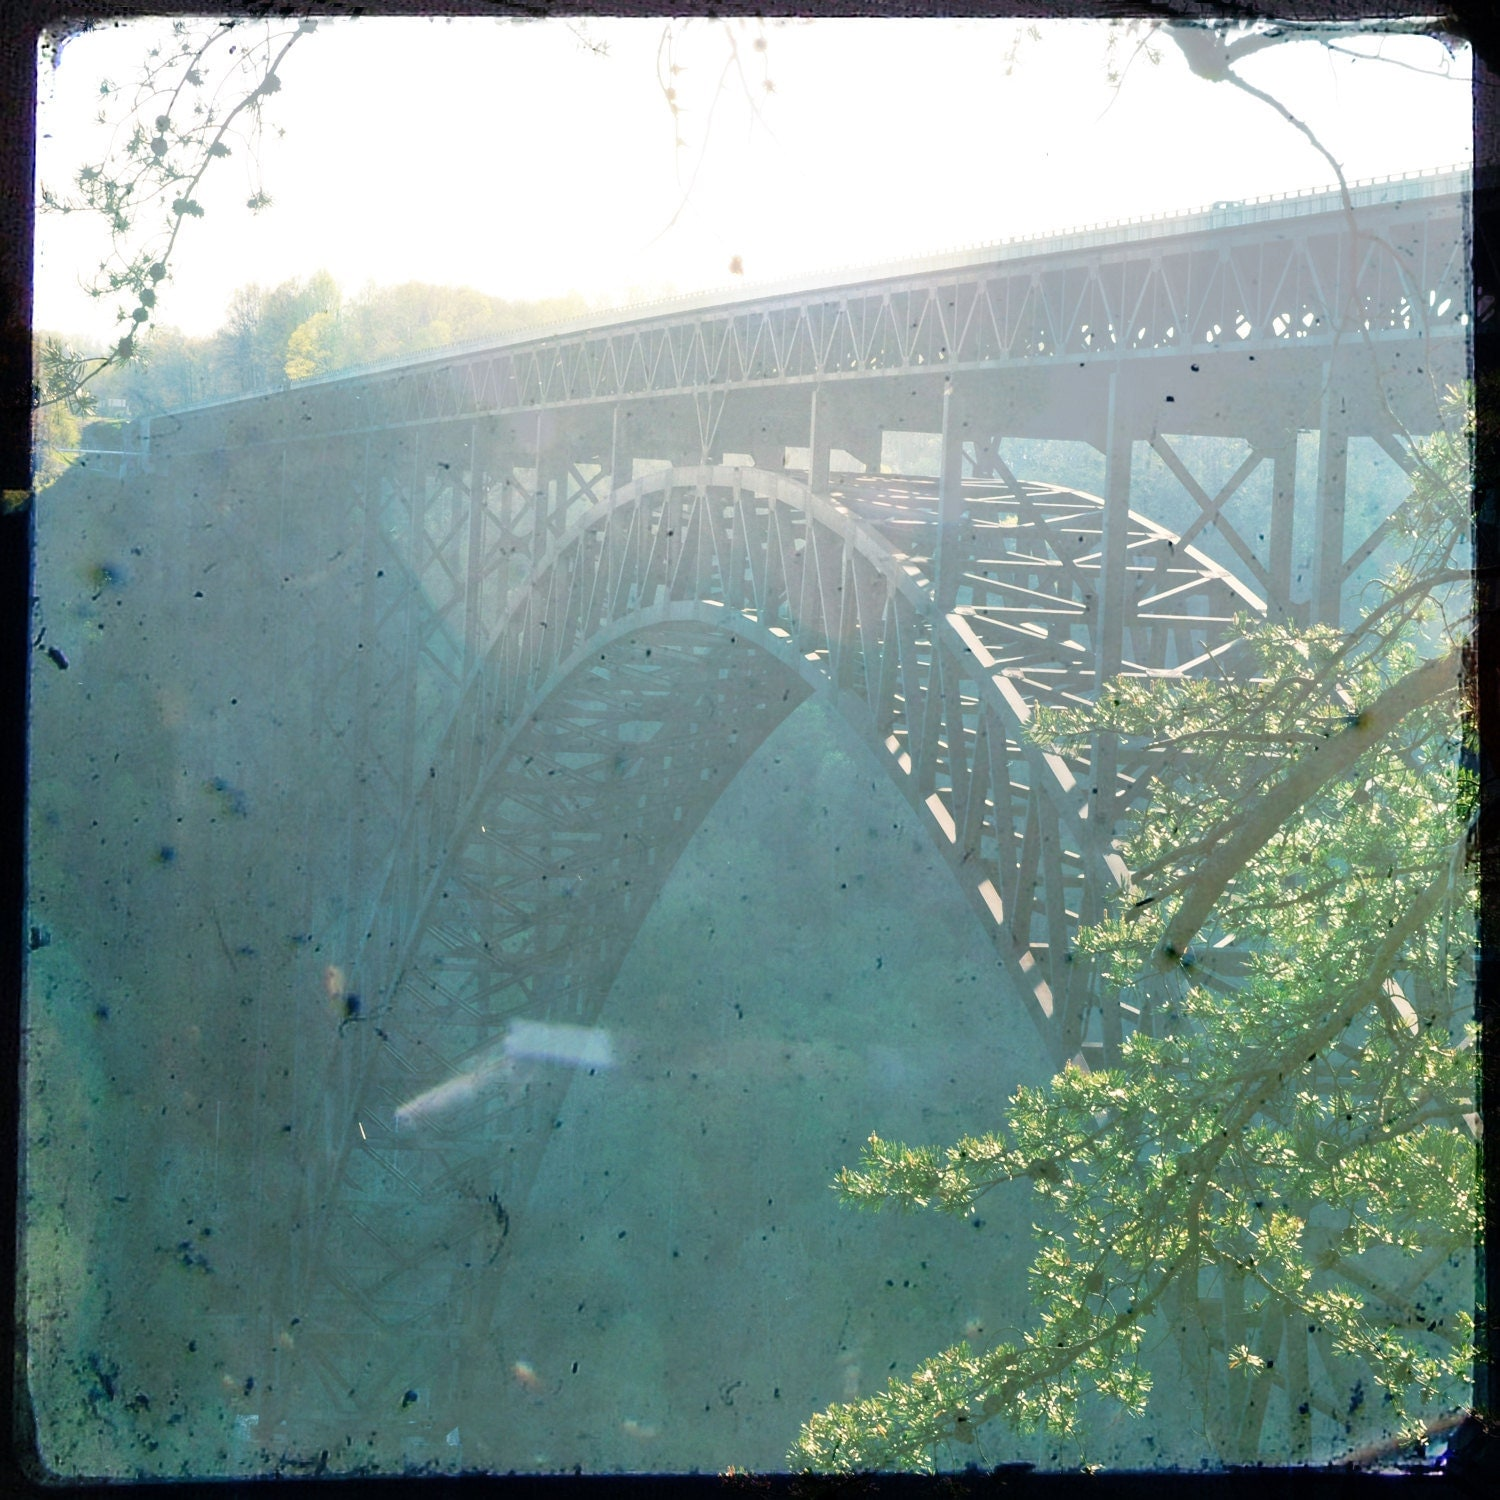 New River Gorge 10x10 Print - RabbitRabbitFinds